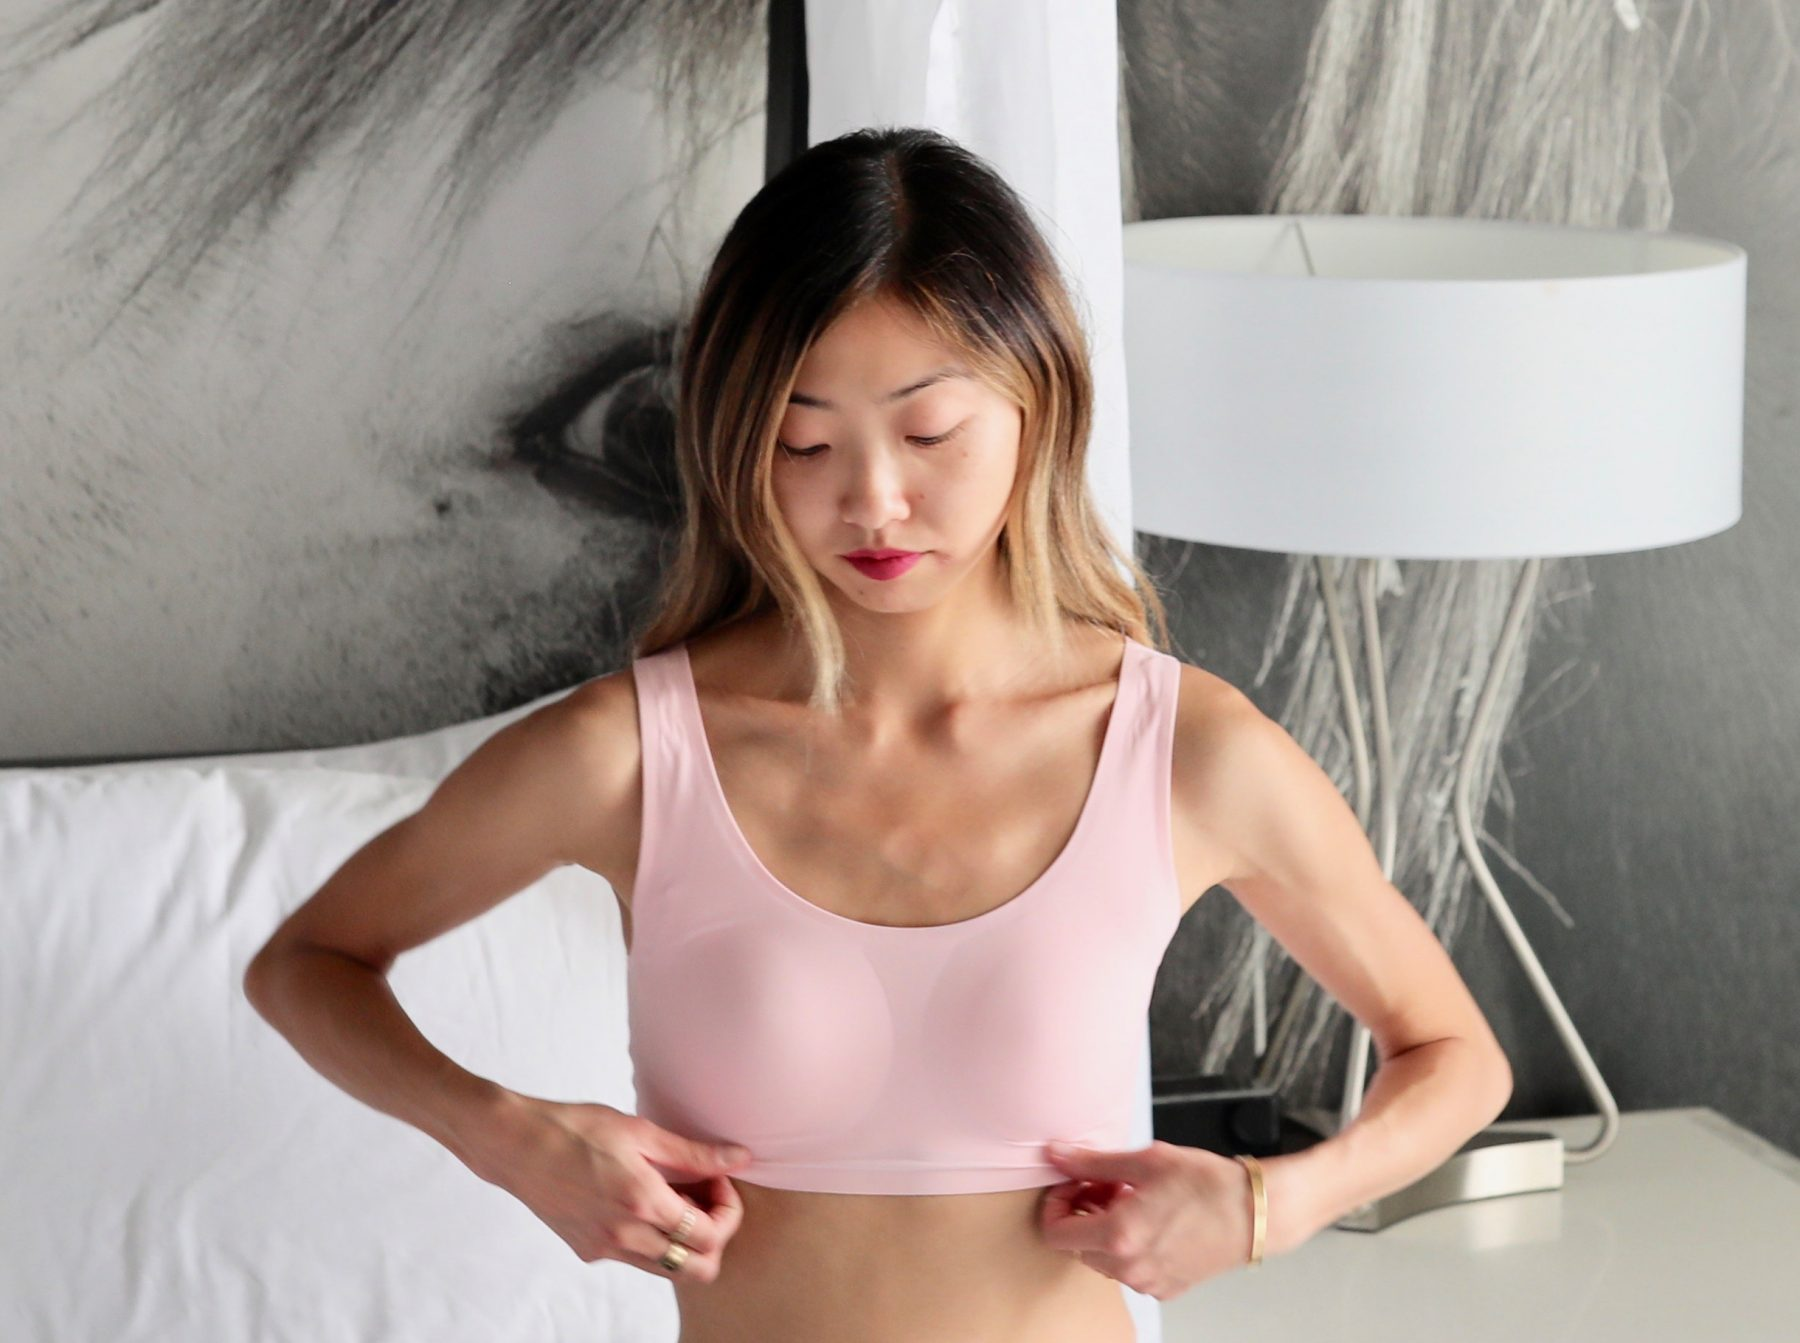 a25290dad8 The Beauty Relax Wireless Bra has AIRism fabric for a smooth